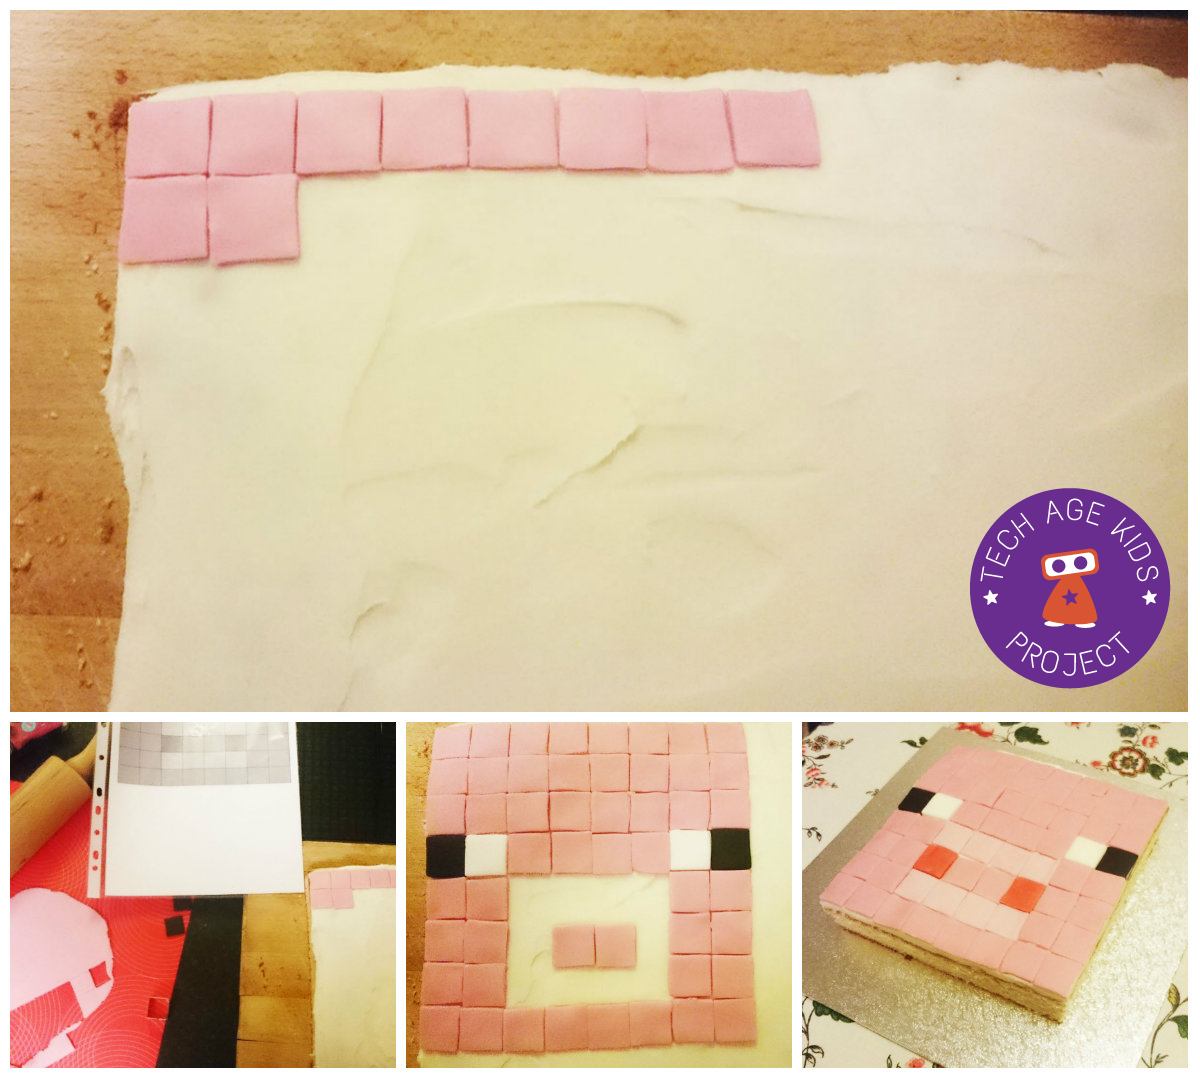 Easy Homemade Minecraft Cakes and Treats   Tech Age Kids